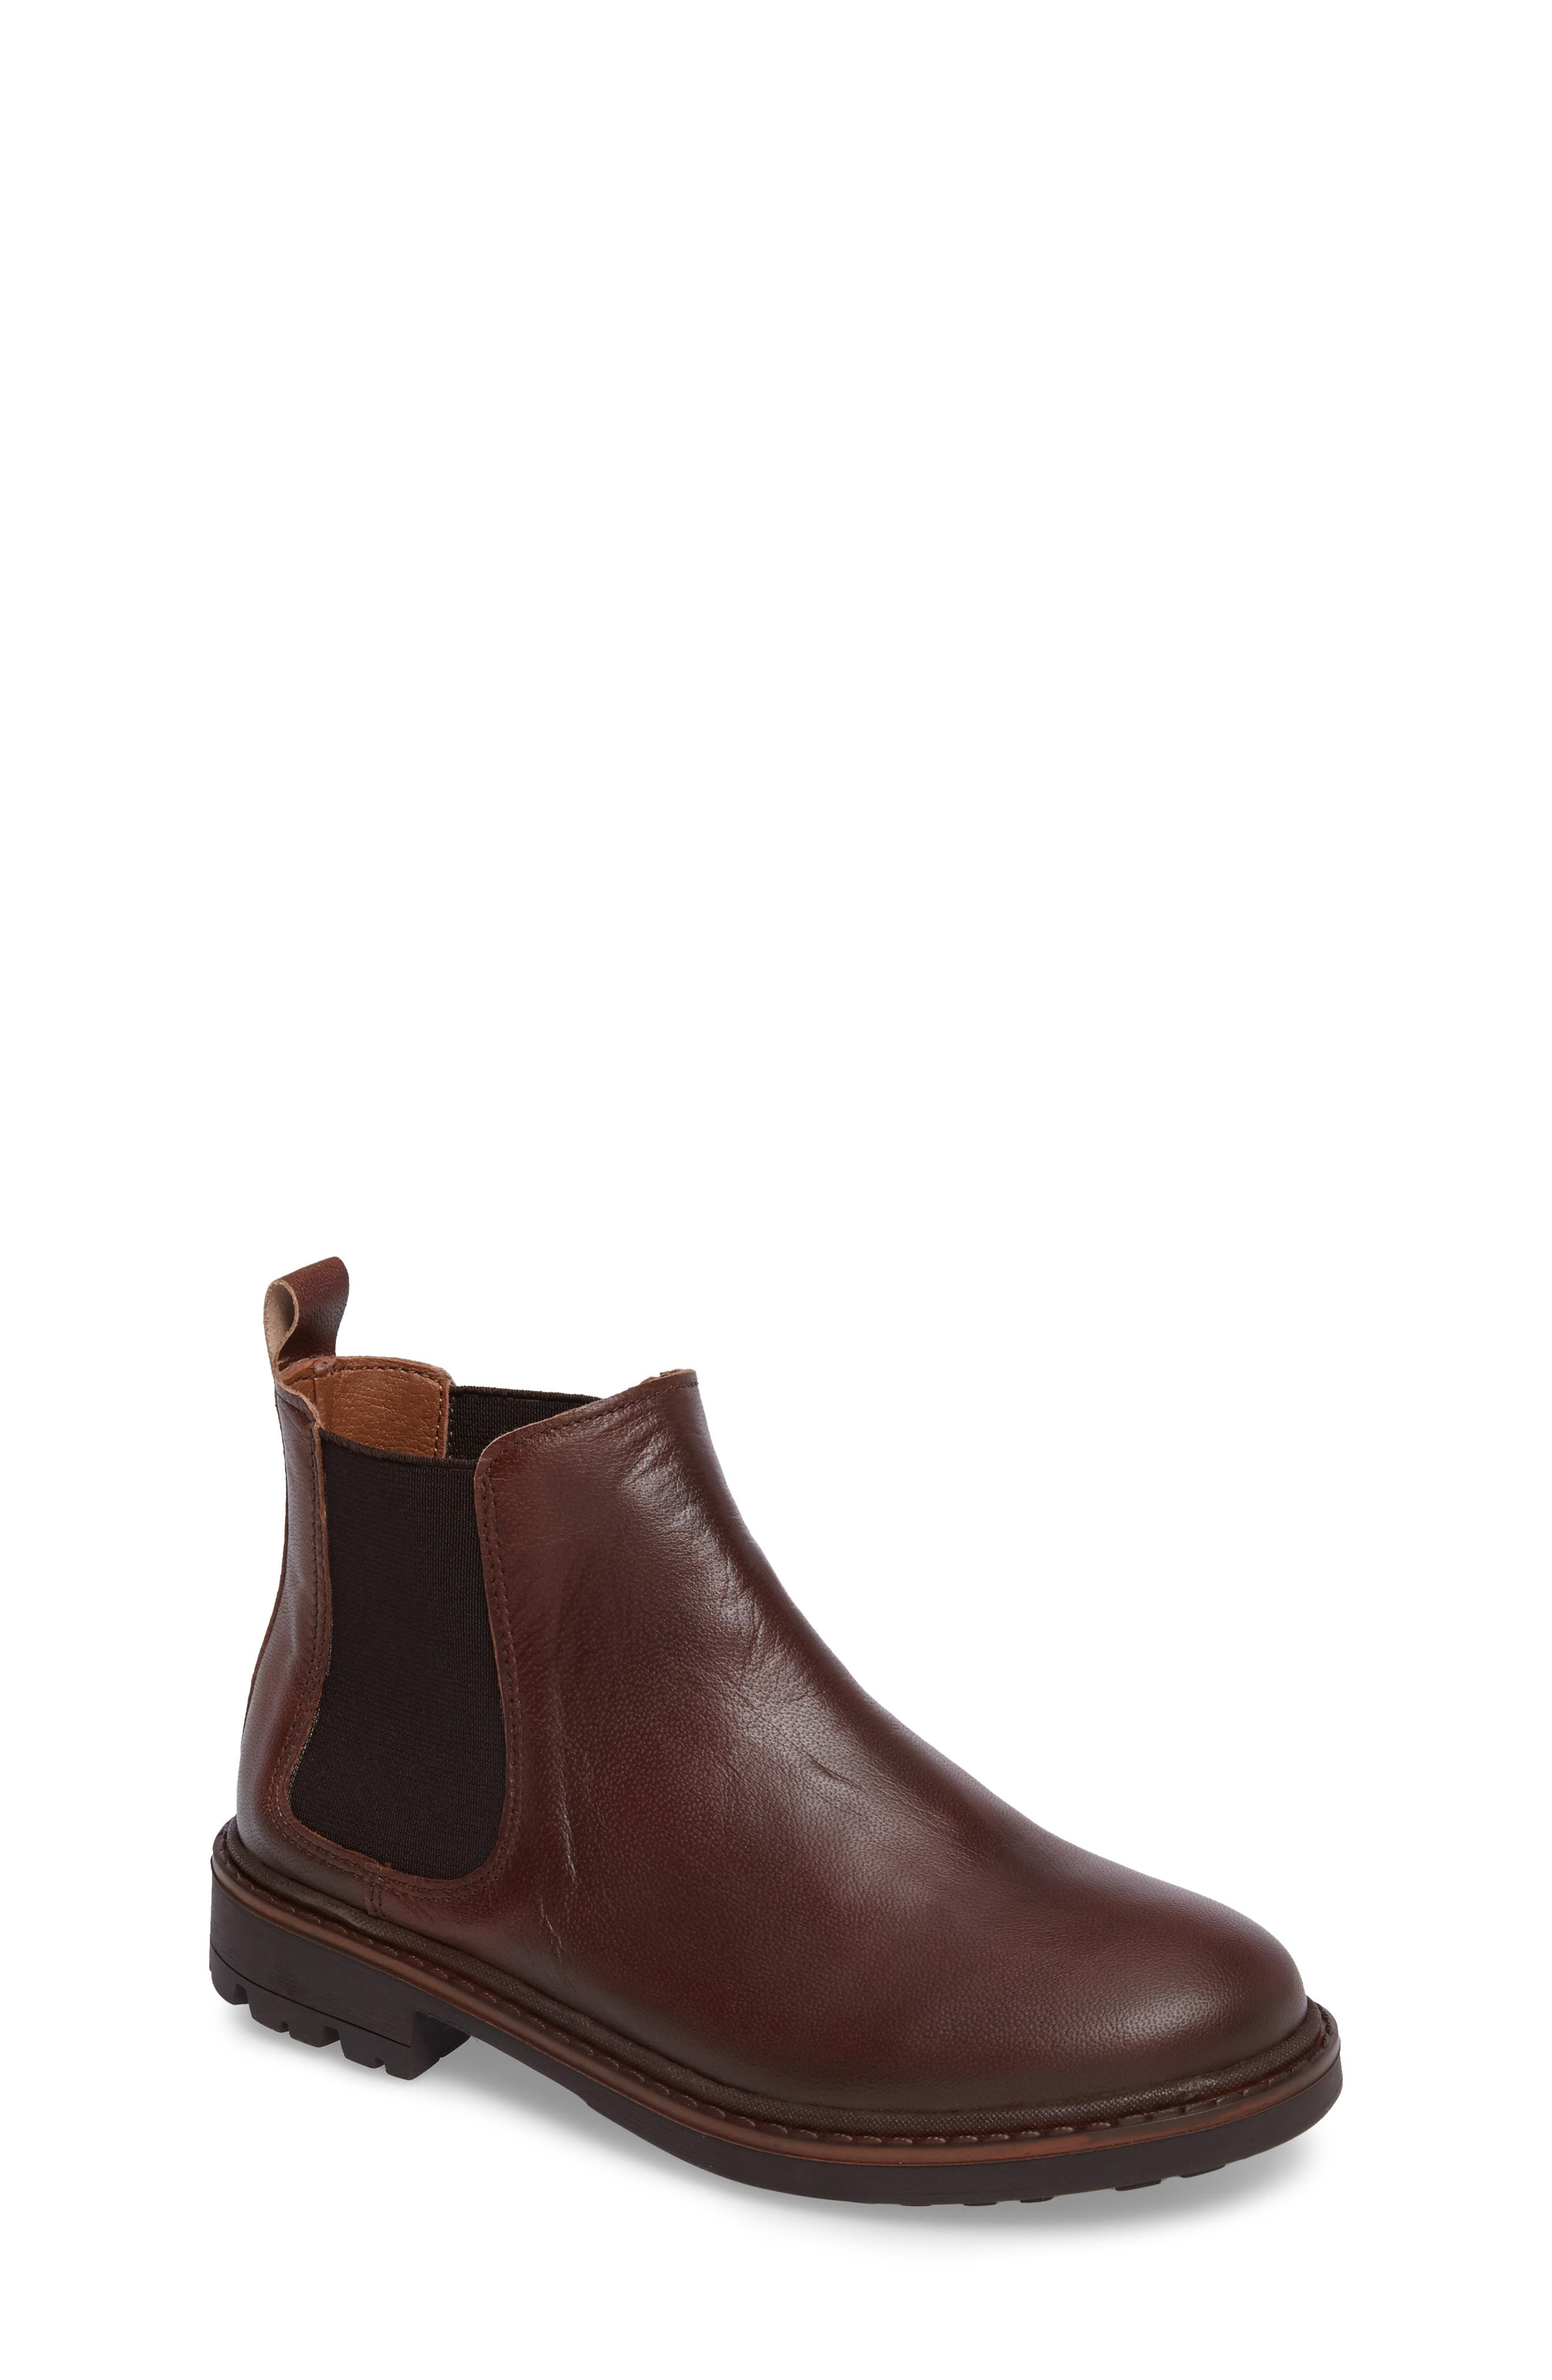 Taber Chelsea Boot,                         Main,                         color, 201